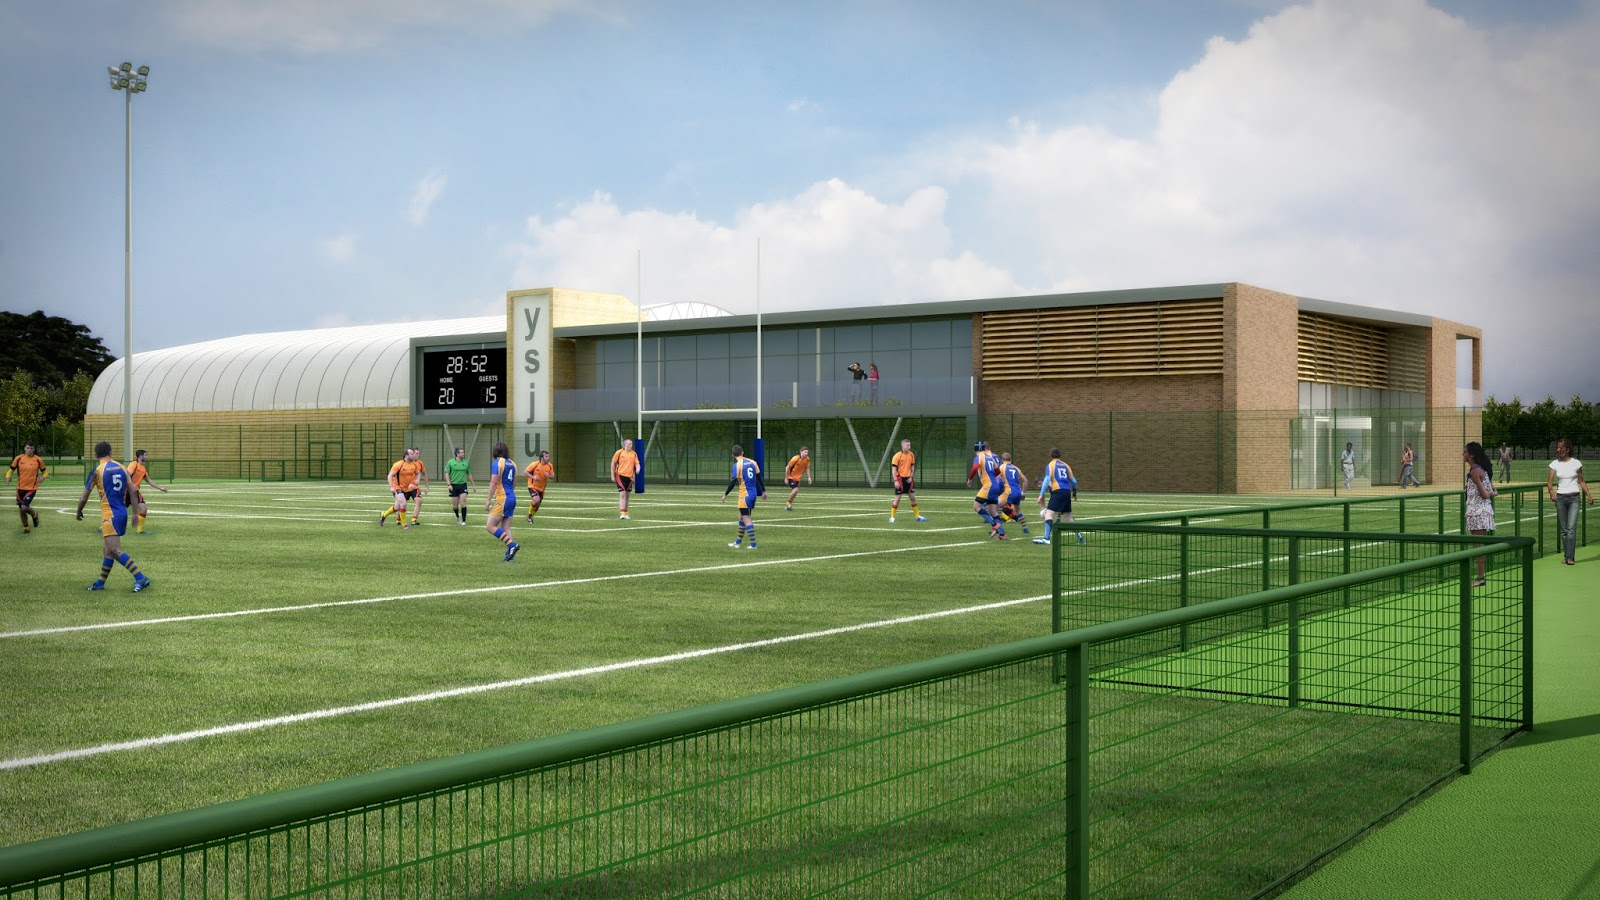 A youth association has applied for planning permission to build a new sports centre at ilkleys warehouse youth